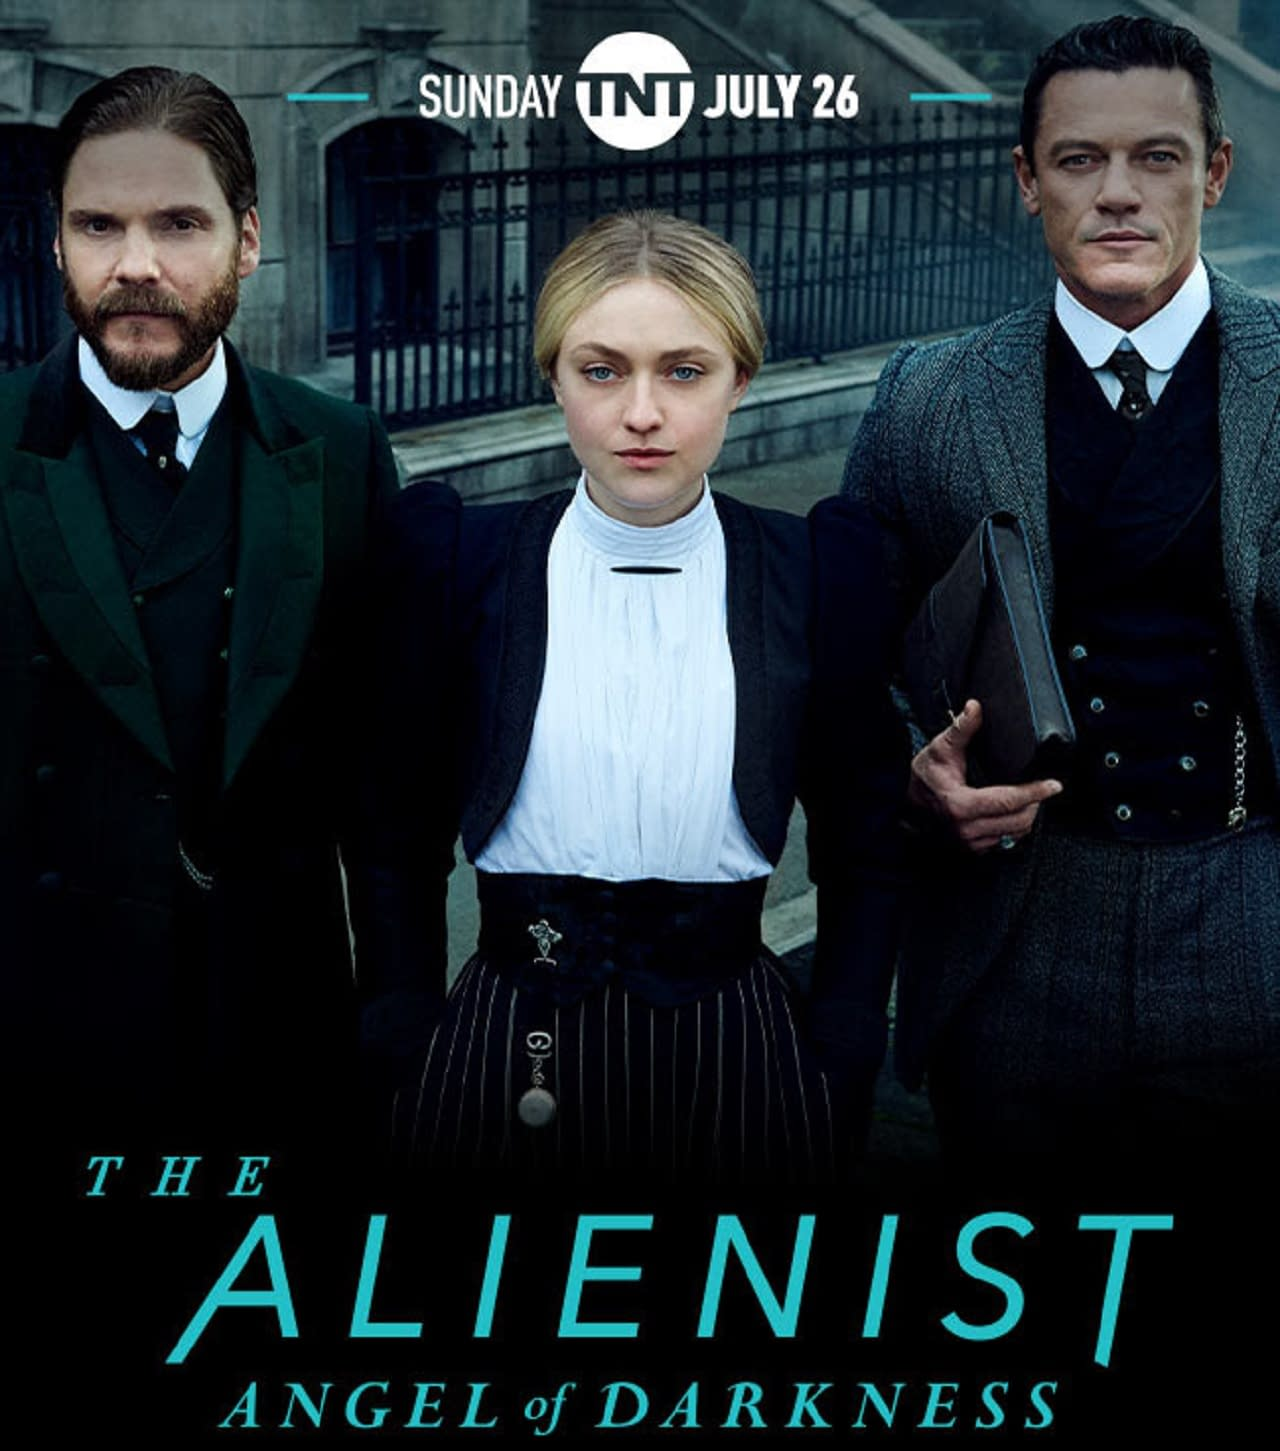 The Alienist Angel of Darkness Poster